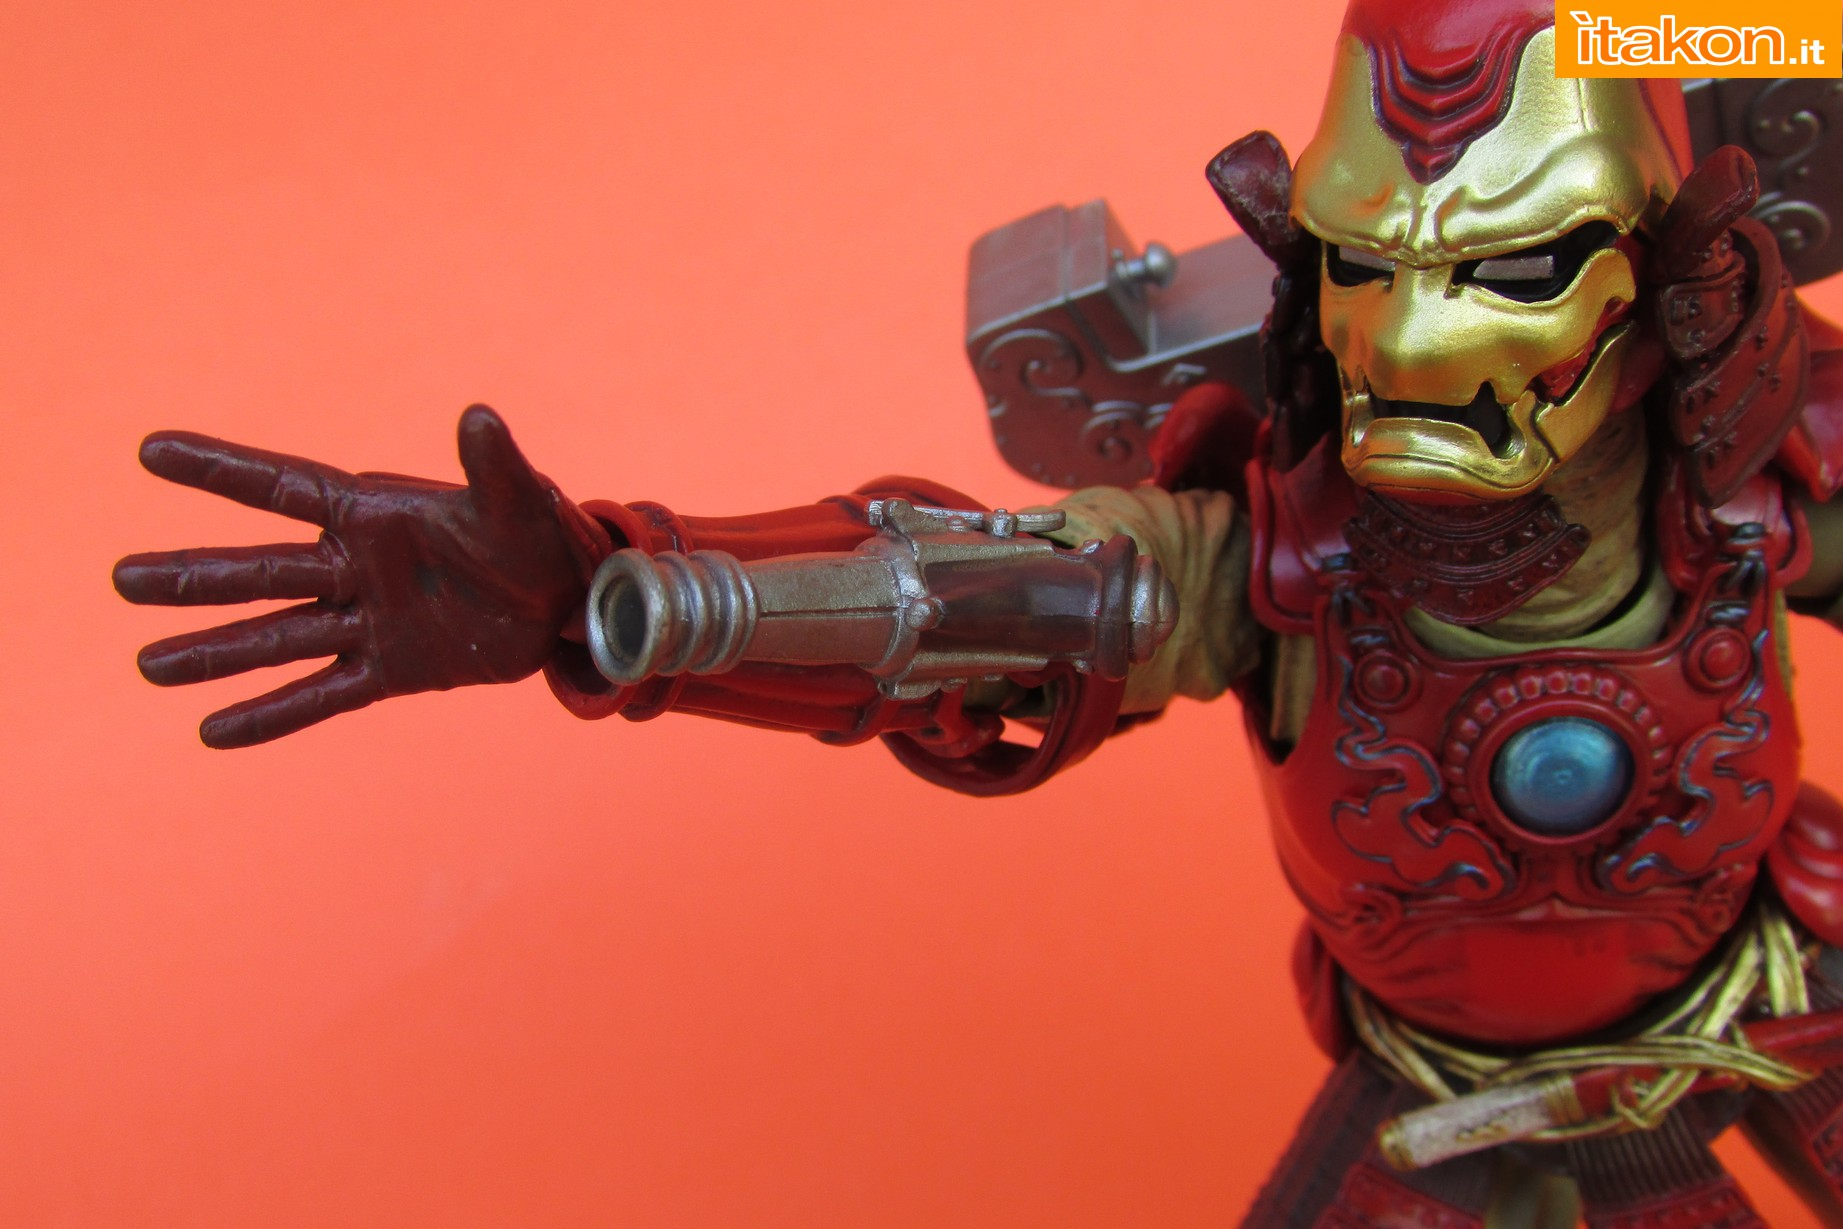 Link a Marvel Comics Koutetsu Samurai Iron Man Mark 3 Meishou MANGA REALIZATION review Bandai Itakon.it42